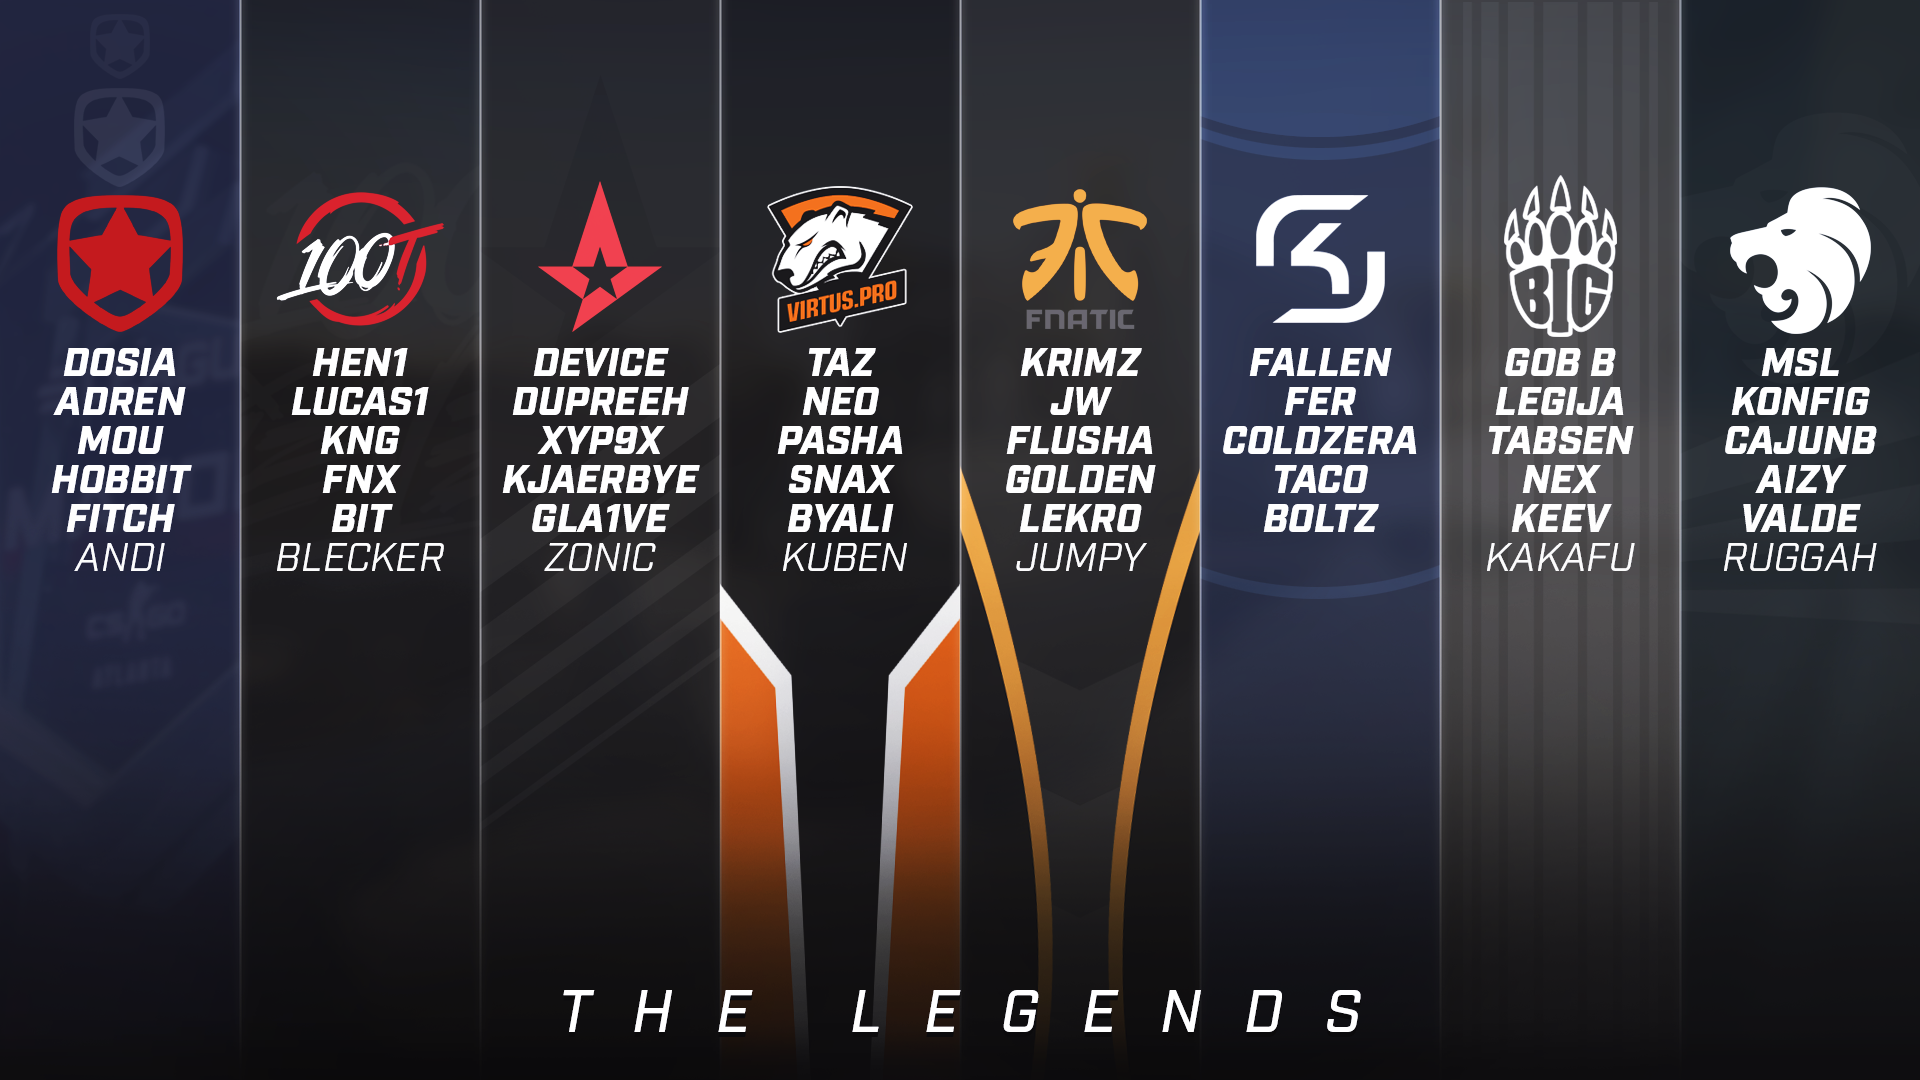 Wallpaper I made for The Legends going into the ELEAGUE